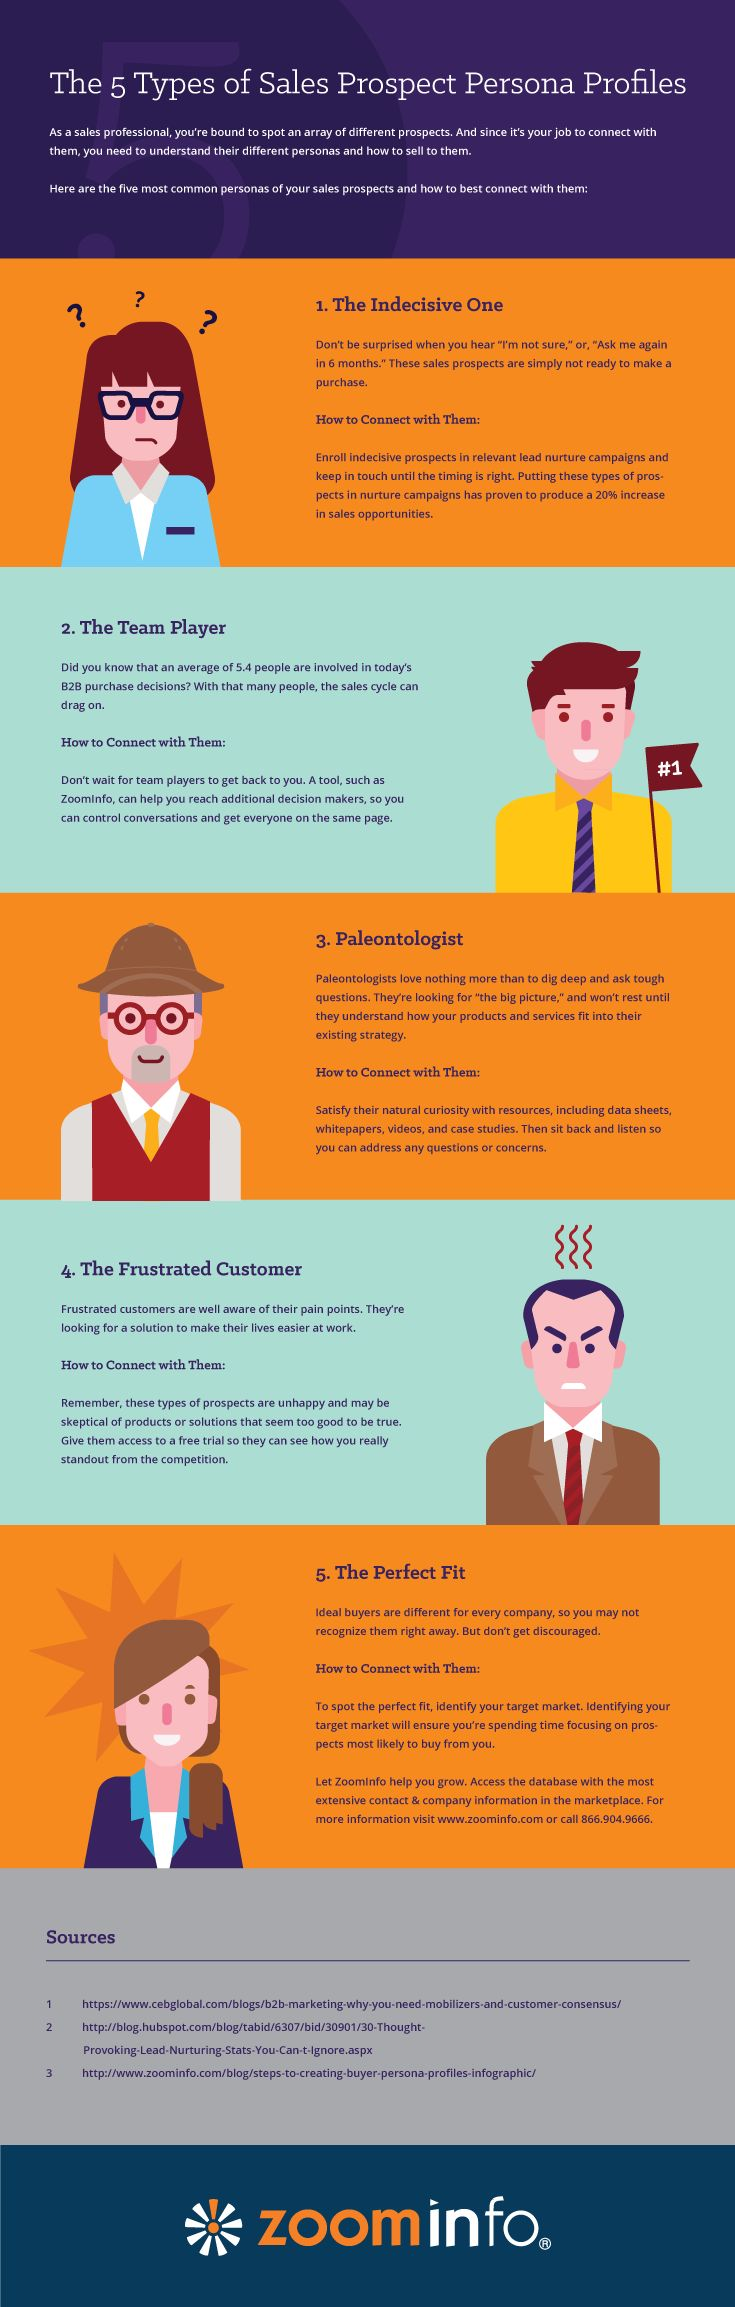 The 5 Types of Sales Prospect Persona Profiles #Infographic #Sales